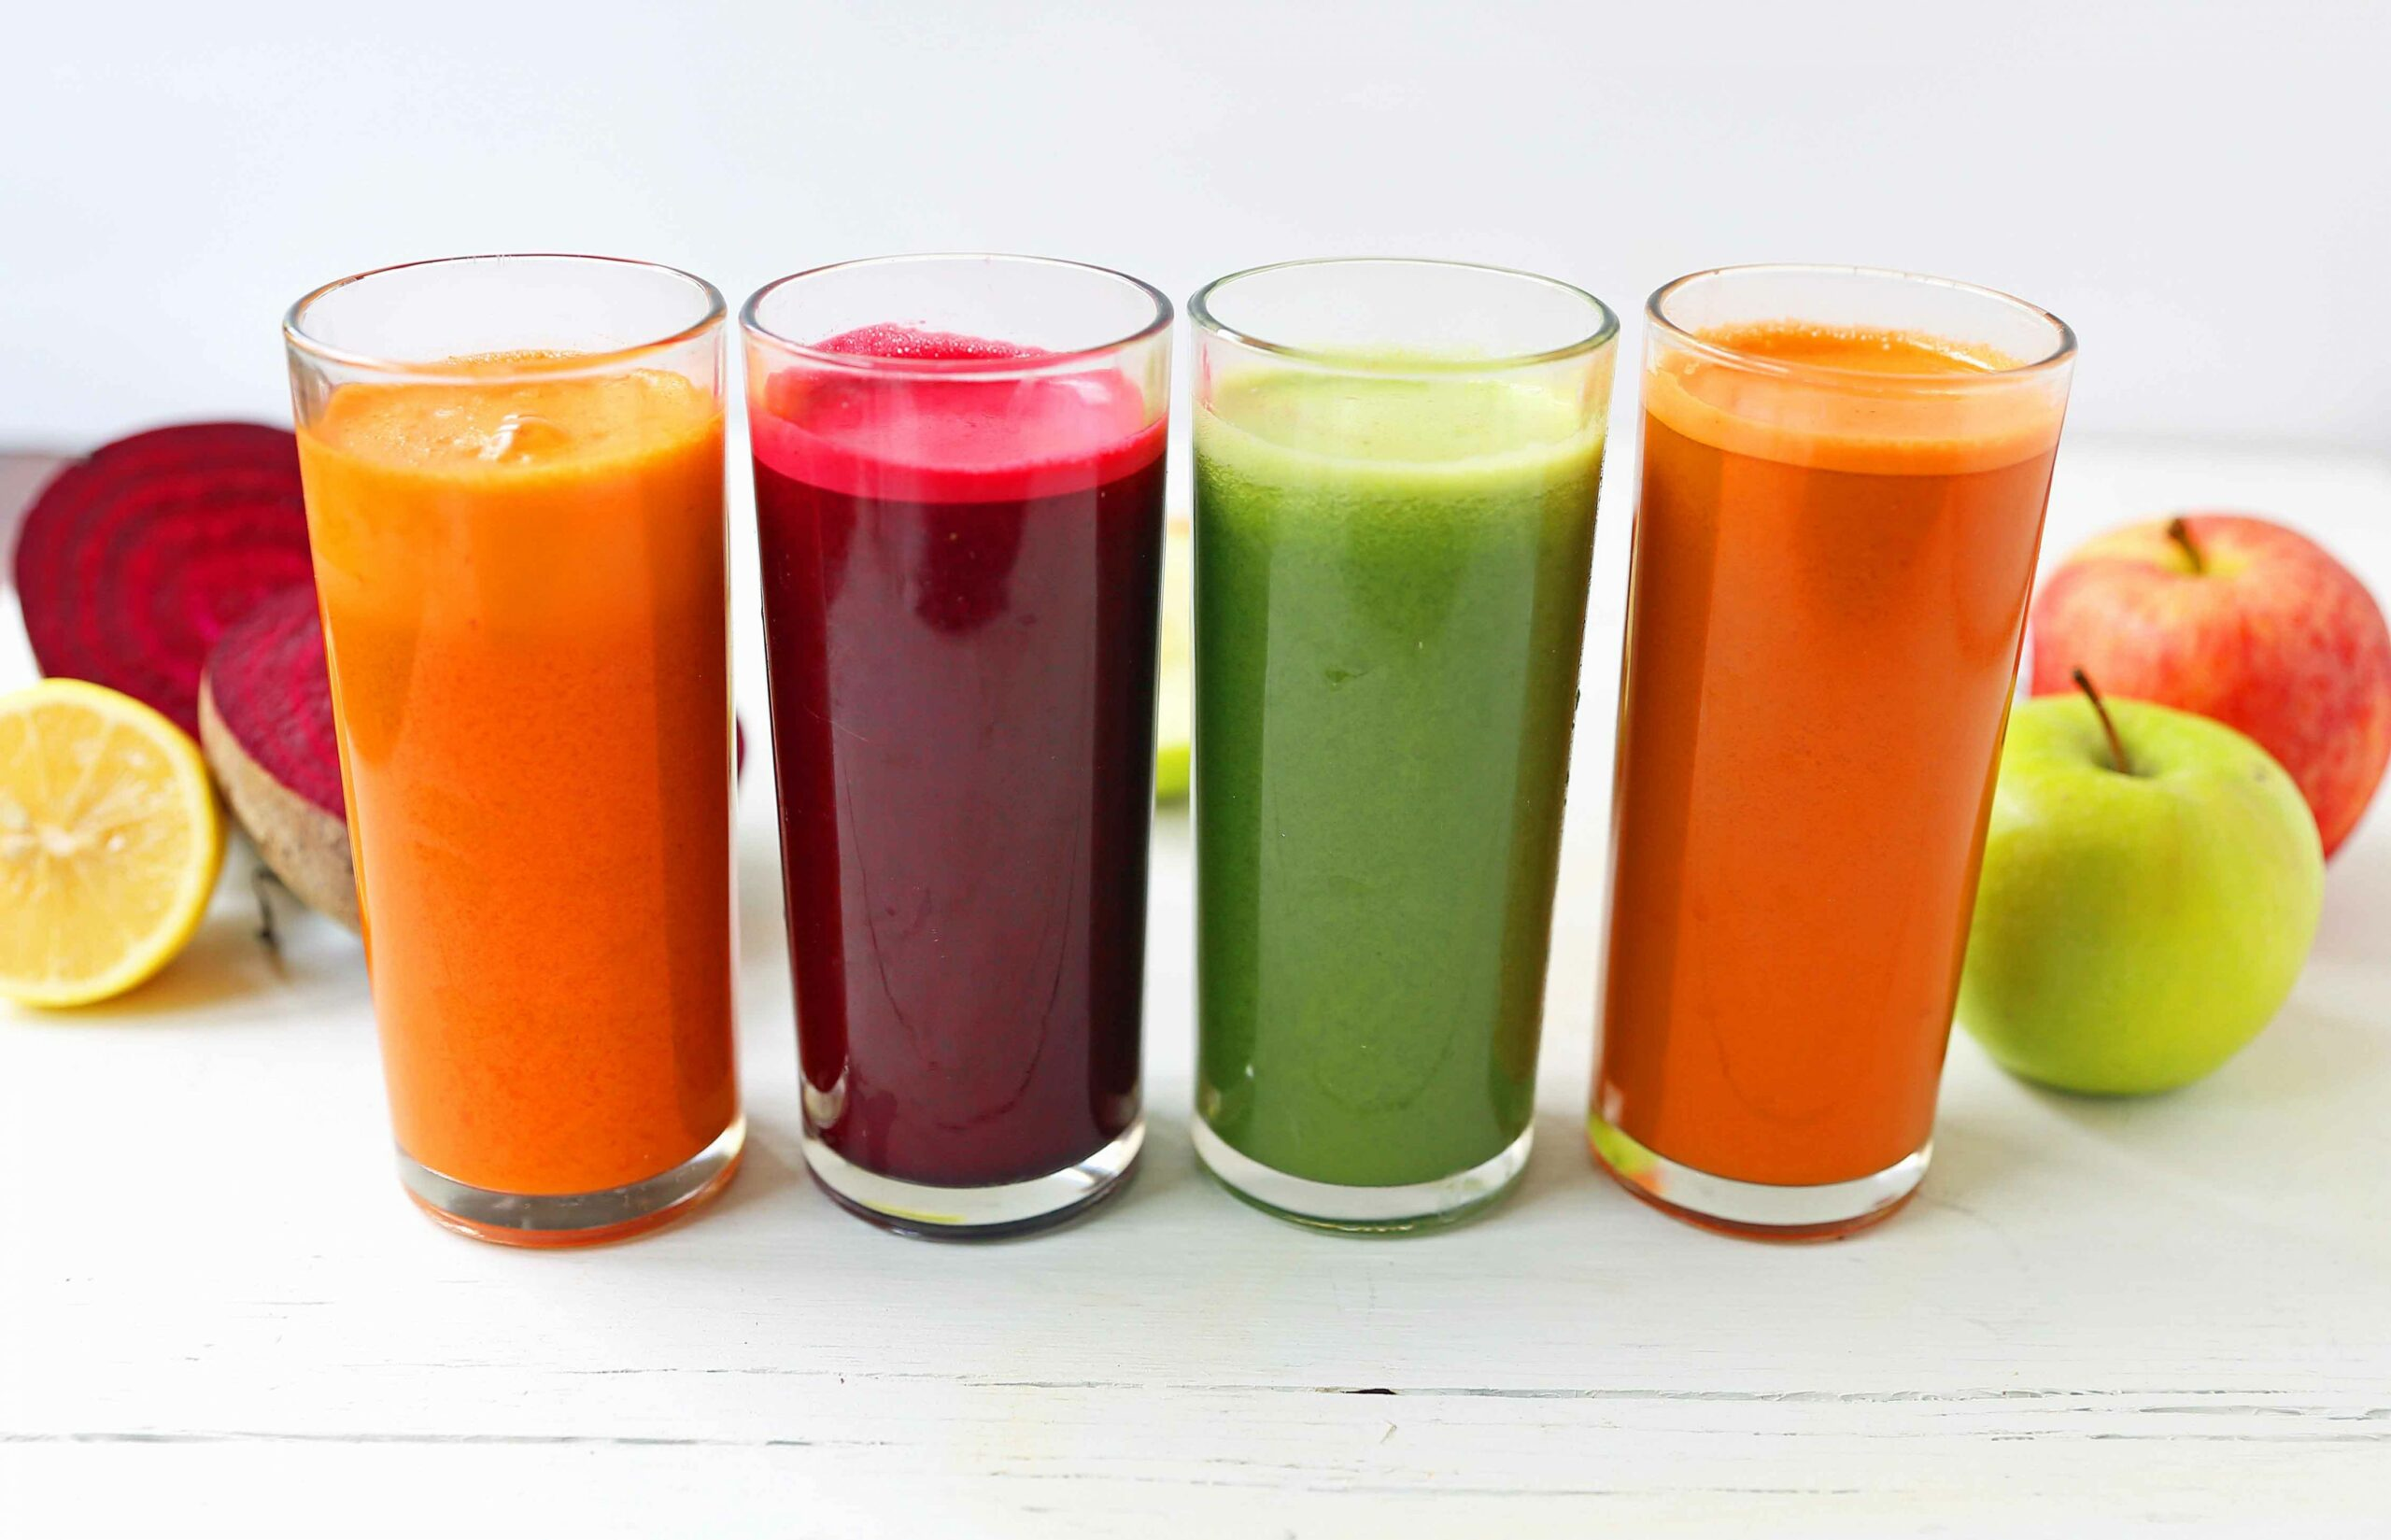 Healthy Juice Cleanse Recipes - Juice Recipes For Weight Loss Using Blender